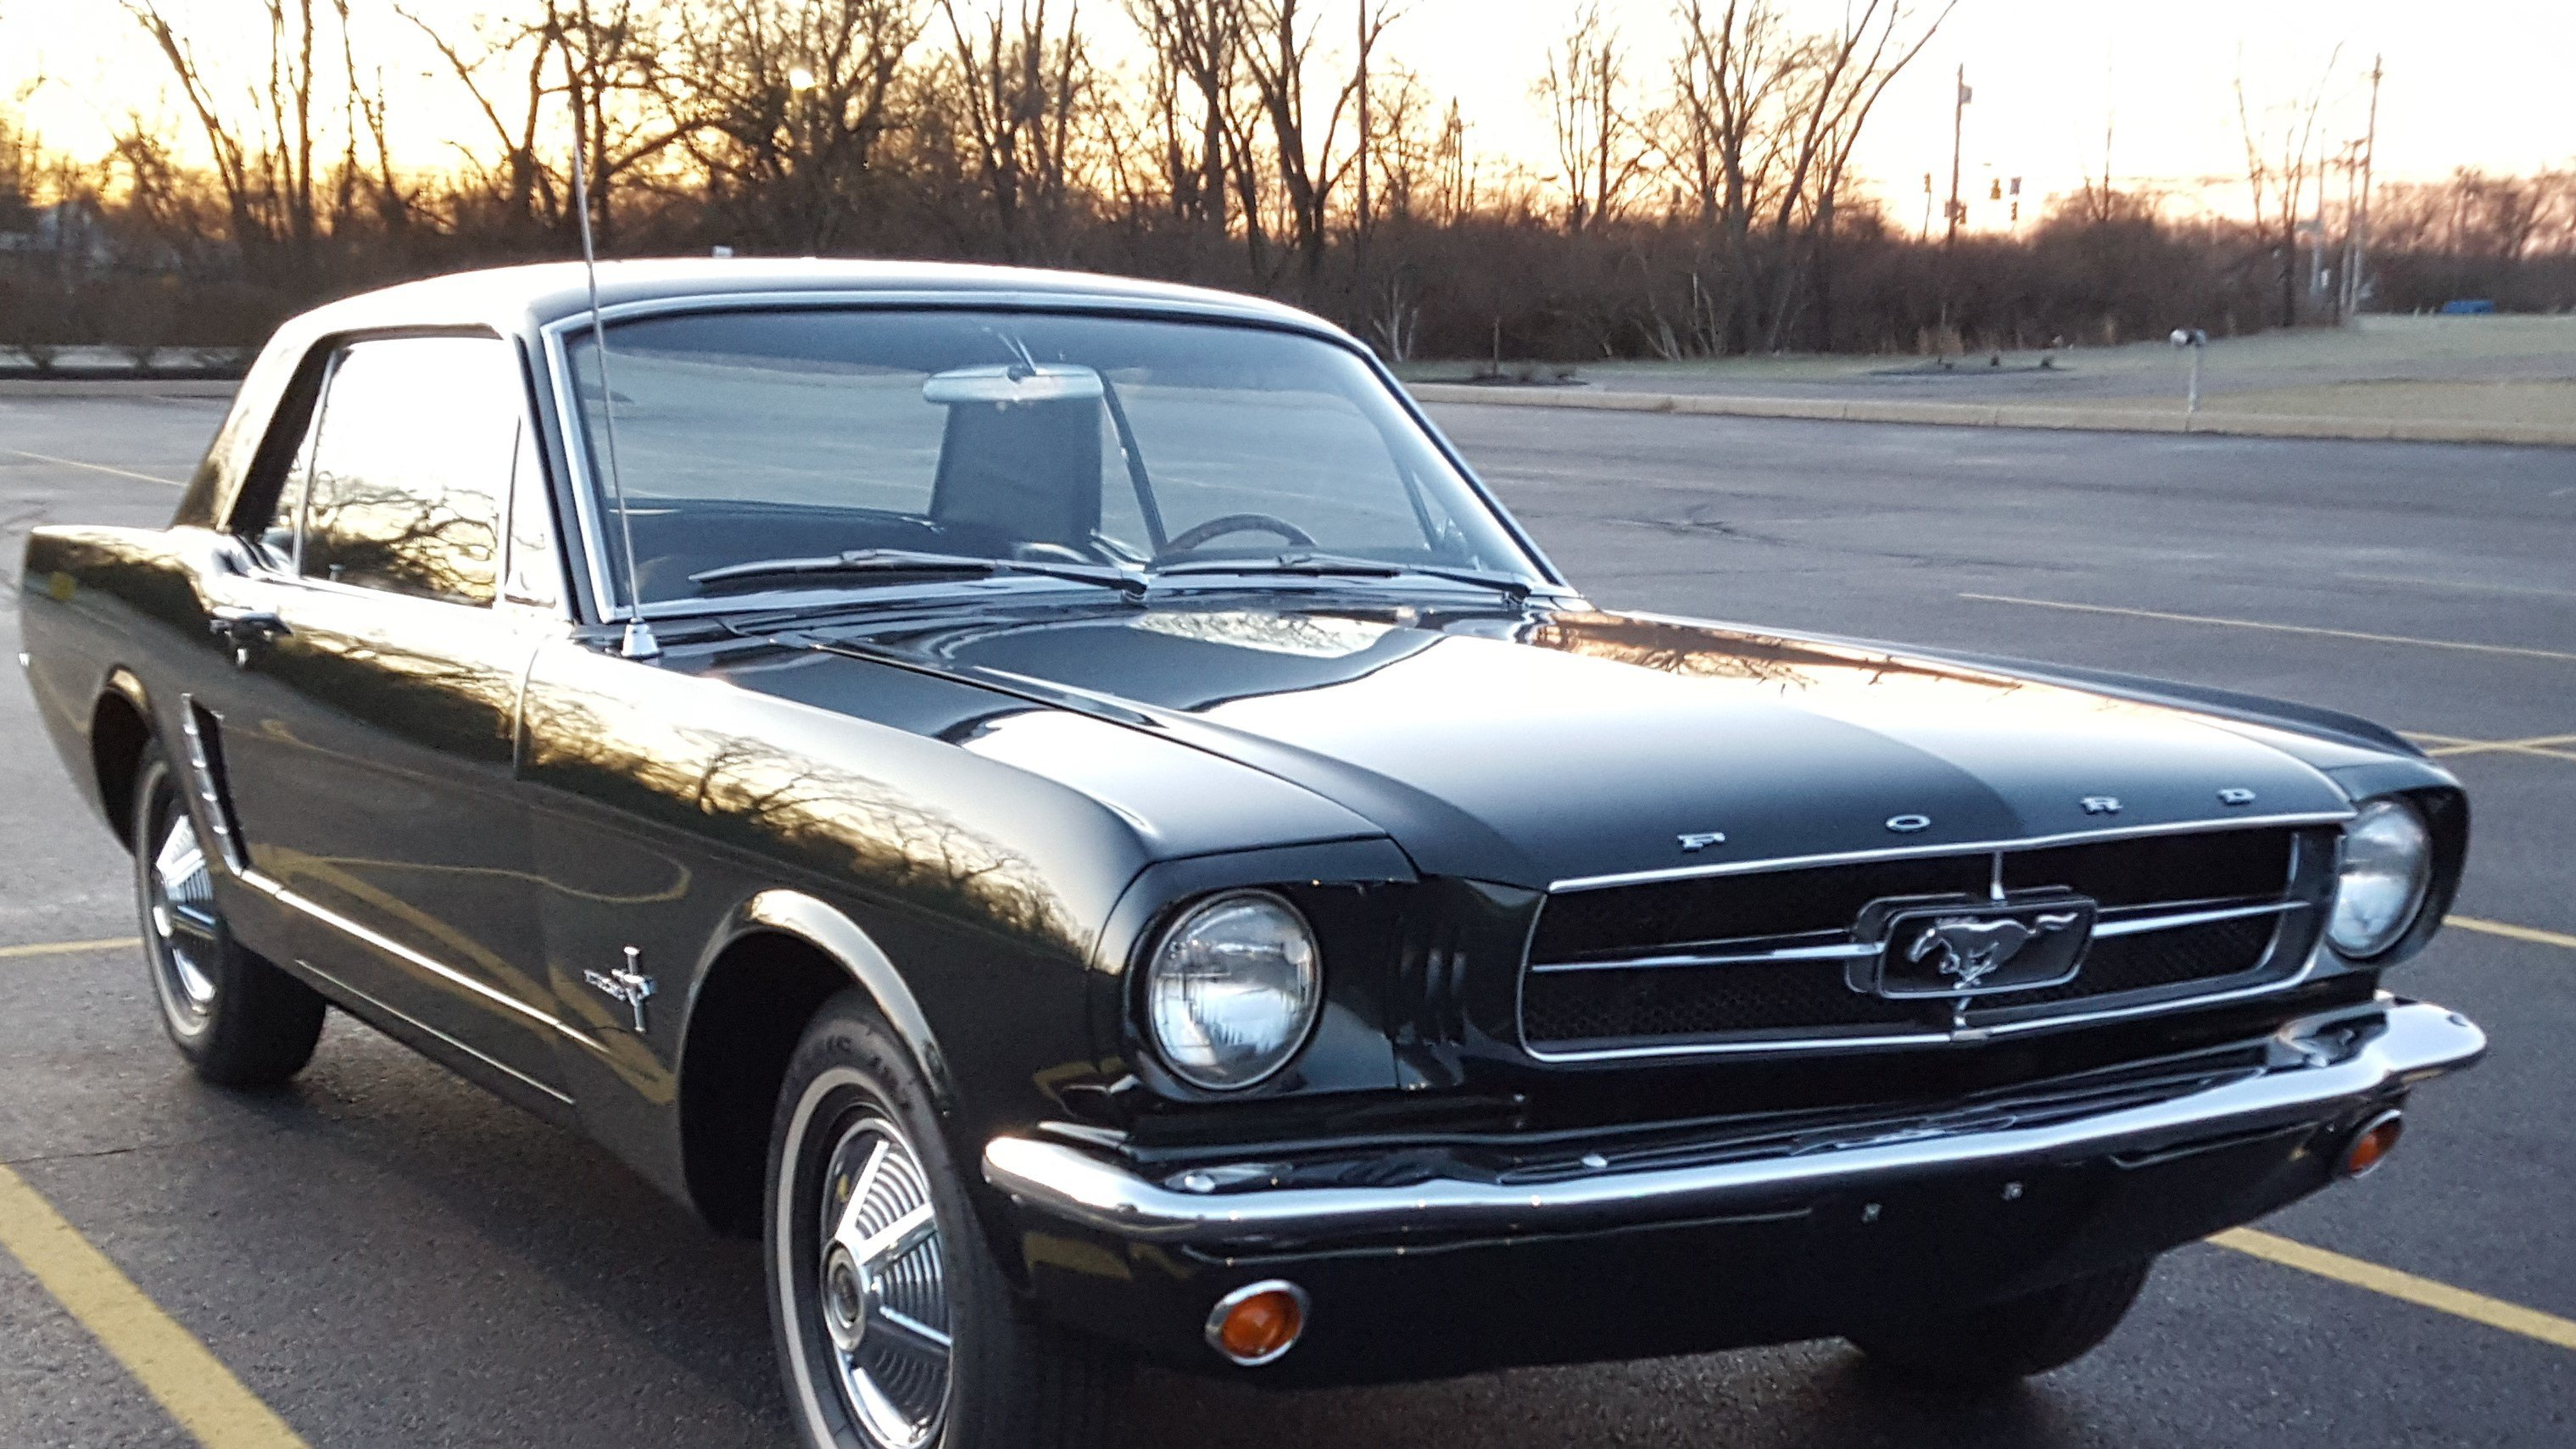 65 Mustang For Sale Craigslist California Craigslist Gold 1966